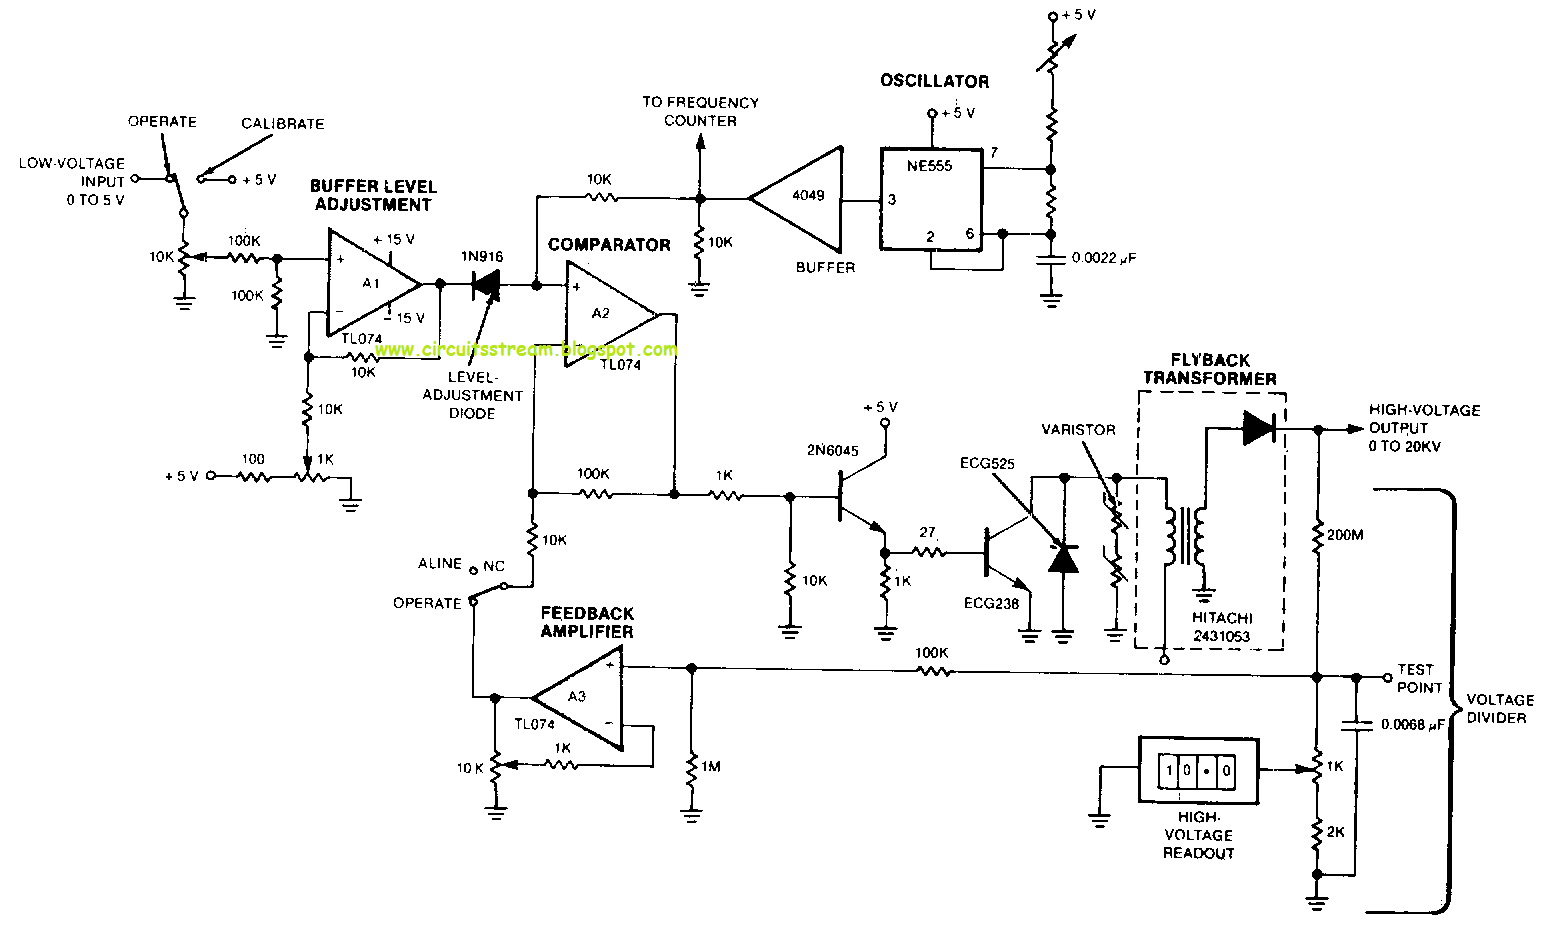 12 volt speaker wiring wiring diagrams and engine schematic  home 12 volt speaker wiring wiring diagrams and engine schematic high voltage circuit diagram